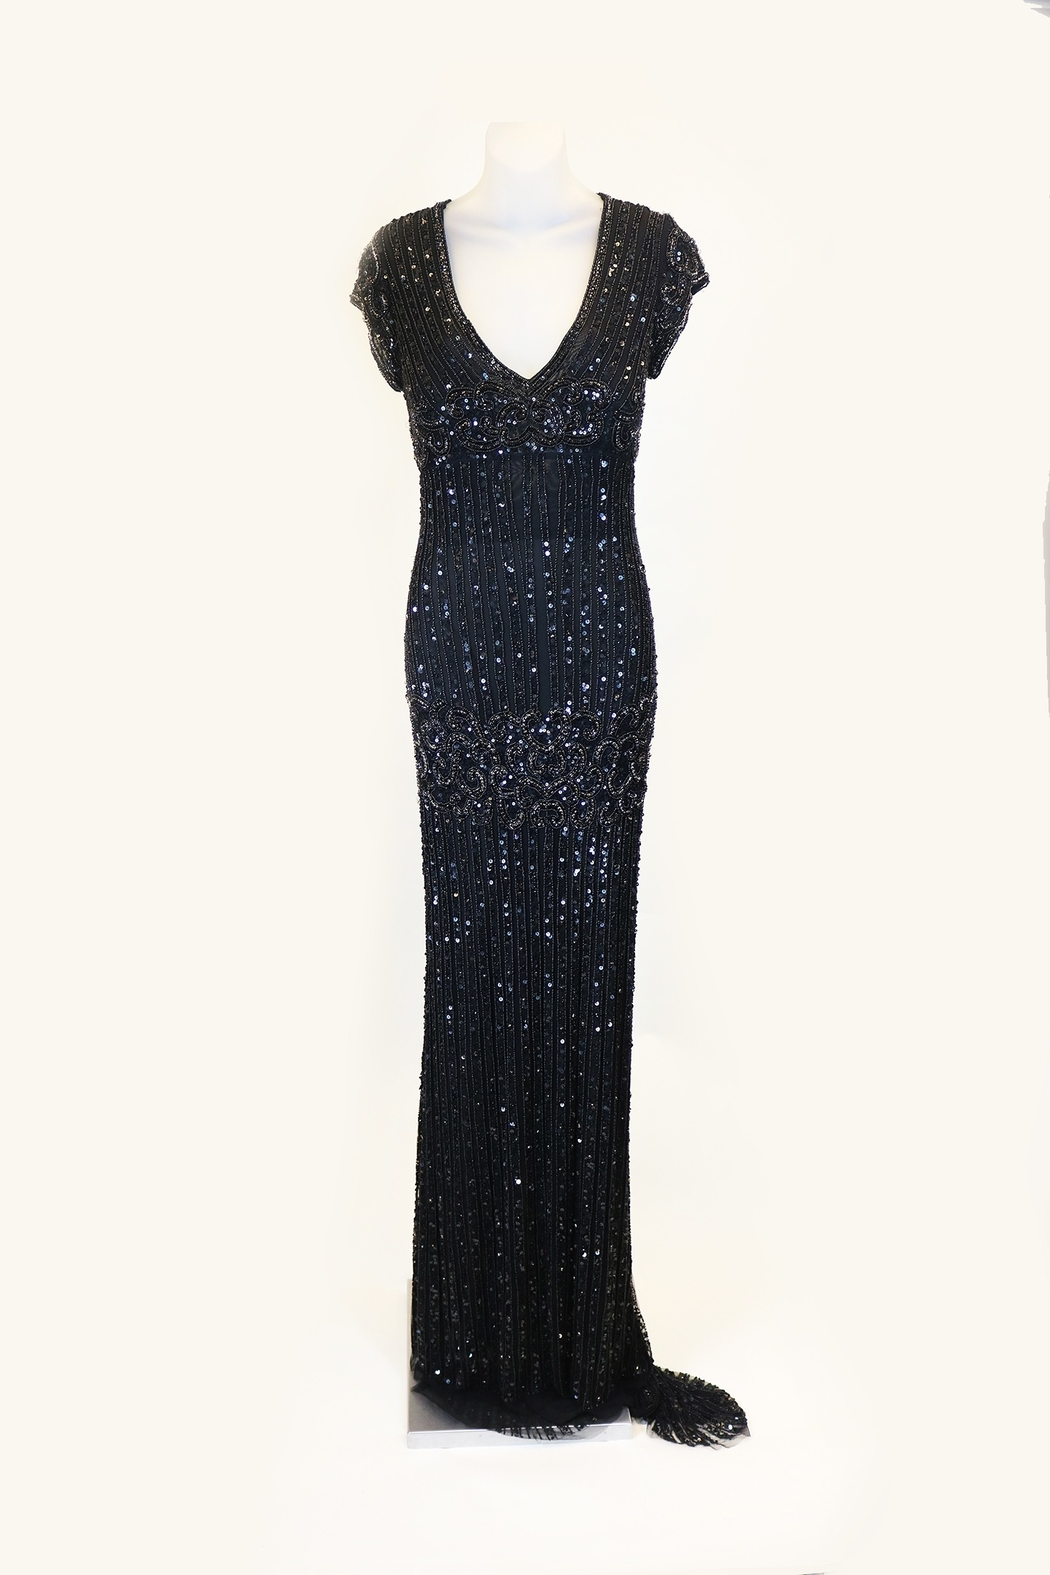 ALBERTO MAKALI LTD BLACK COLUMN GOWN - Main Image